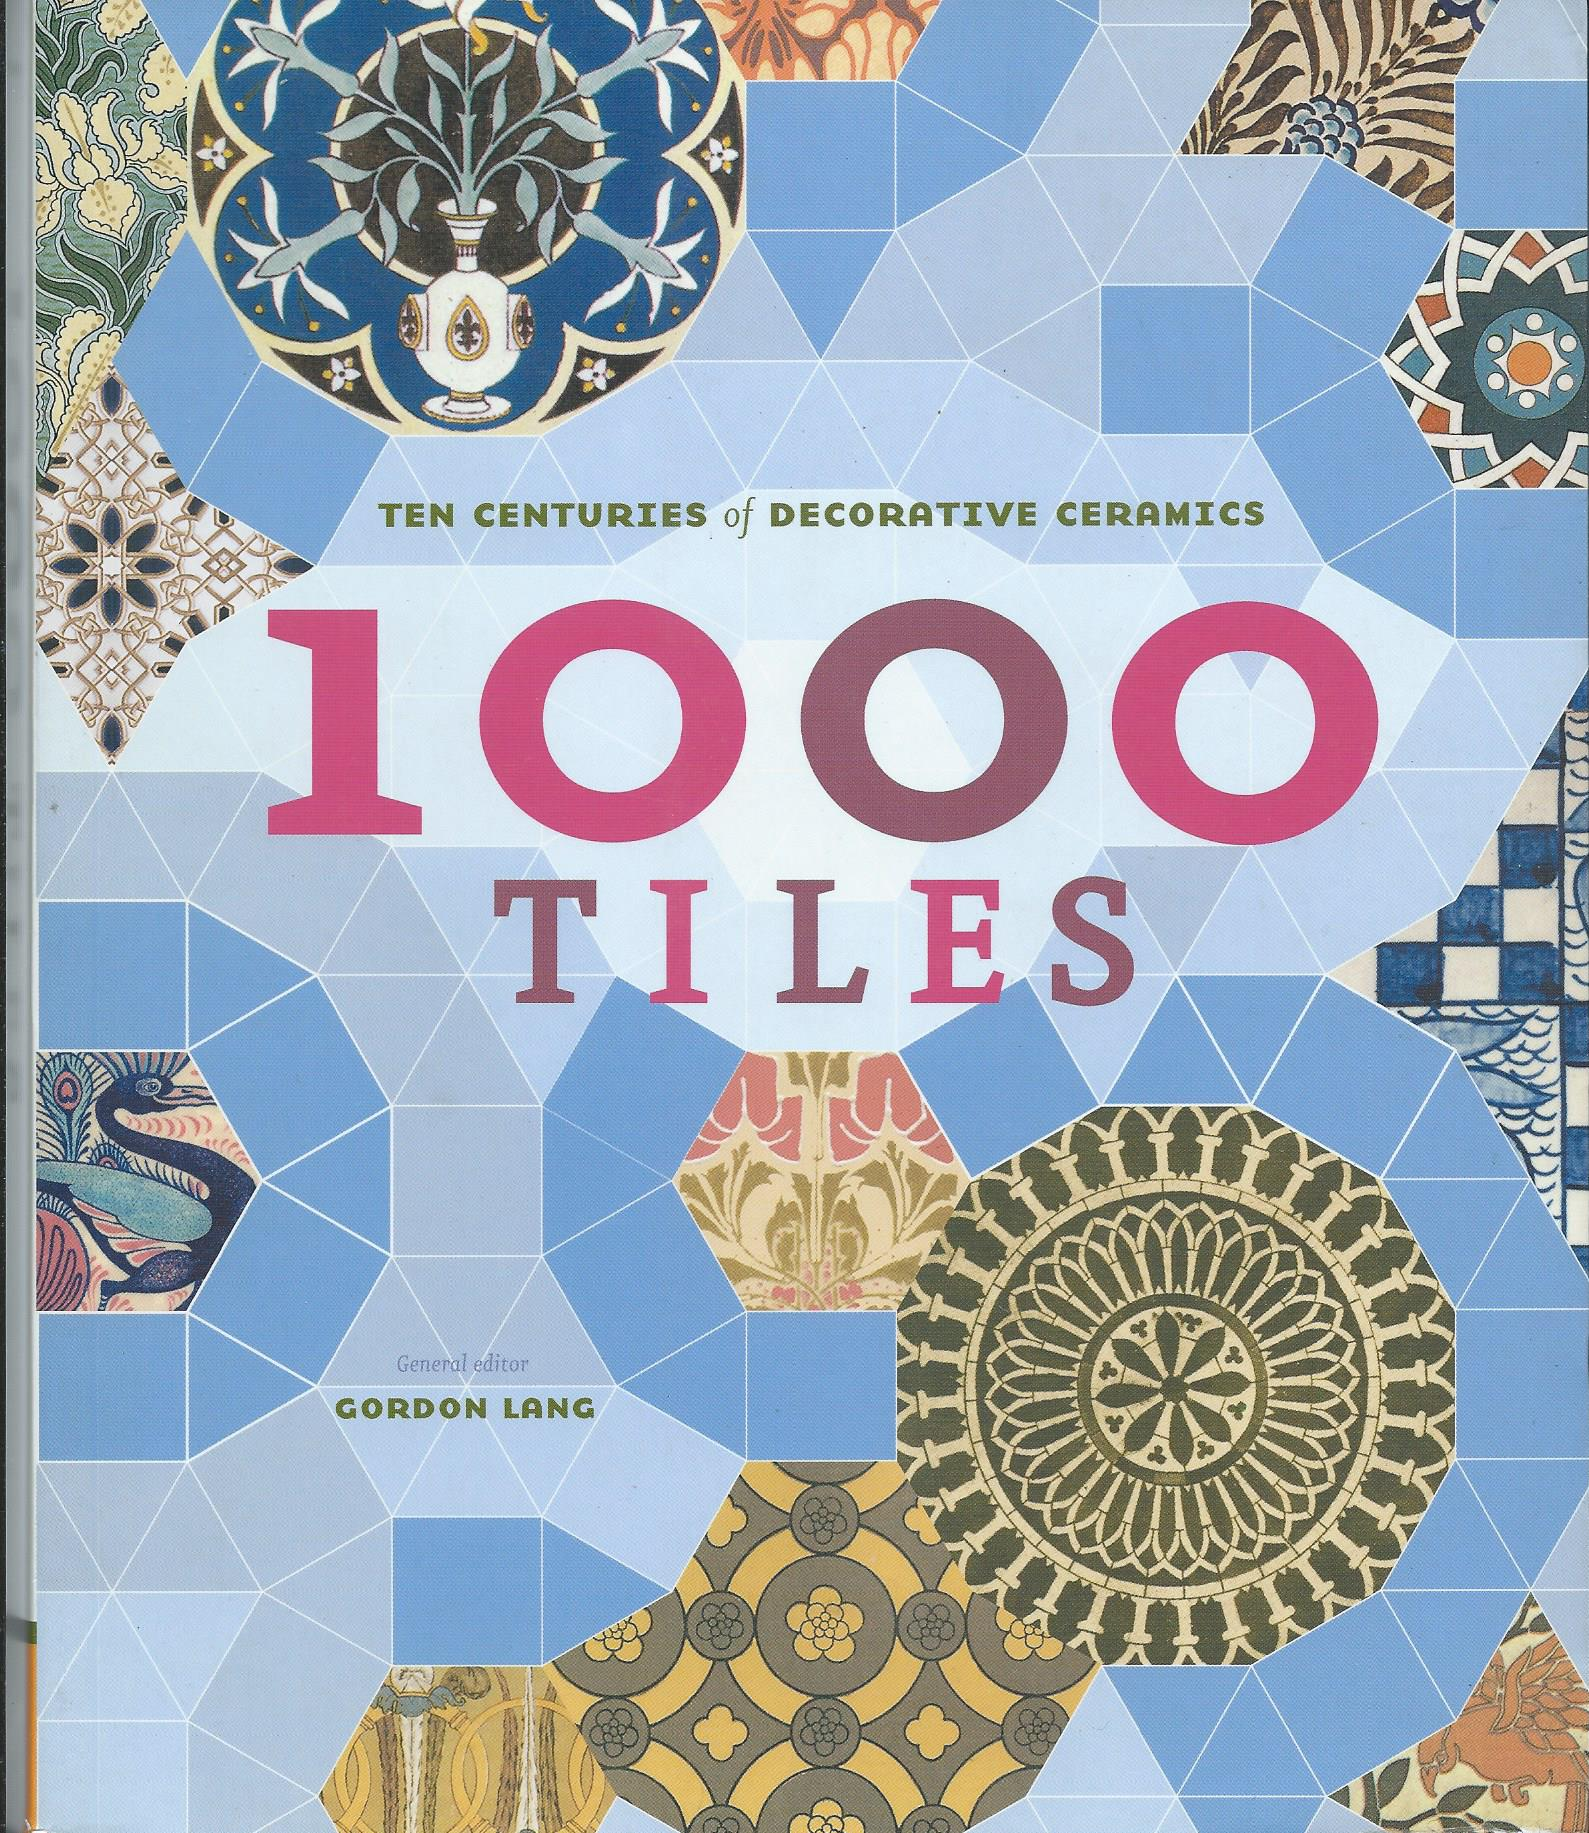 Image for Ten Centuries of Decorative Ceramics; 1000 TILES